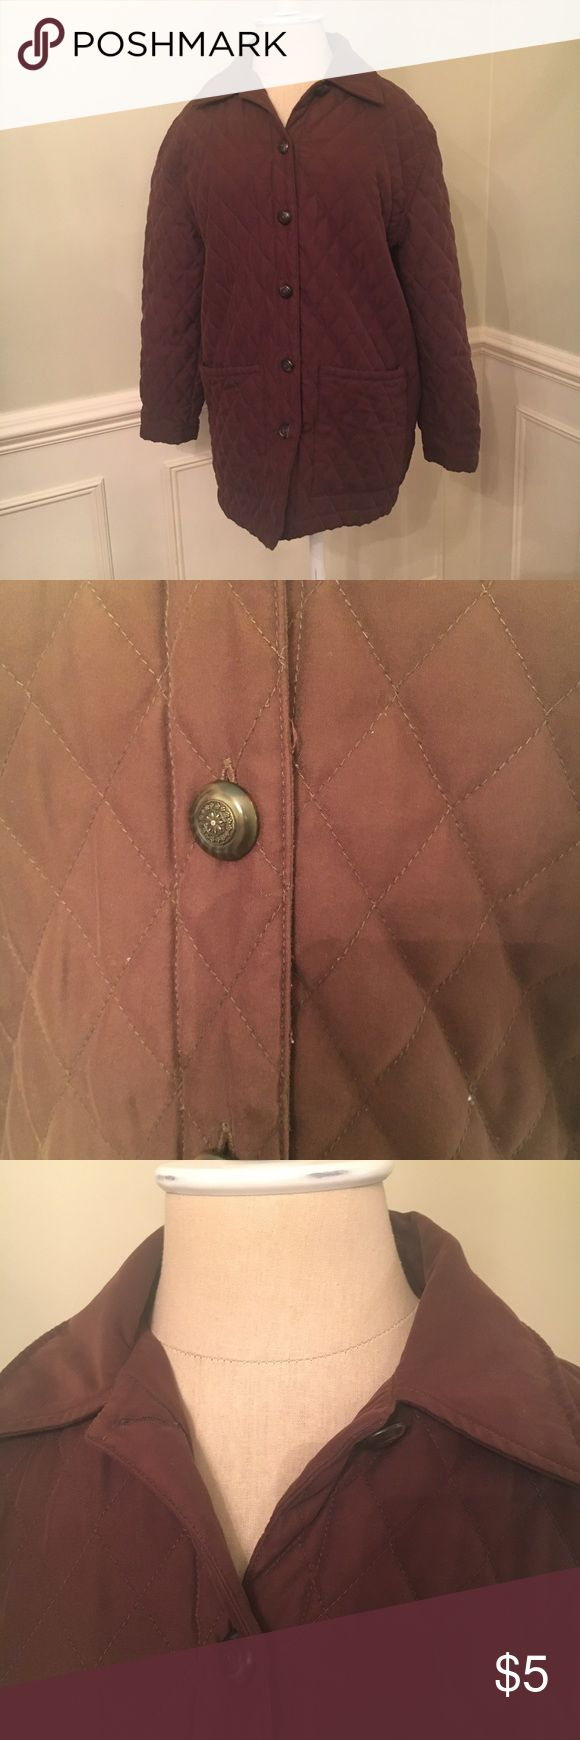 Brown jacket EUC dark brown quilted jacket Smoke free home No trades Reasonable offers are always welcome Laura Ashley Jackets & Coats